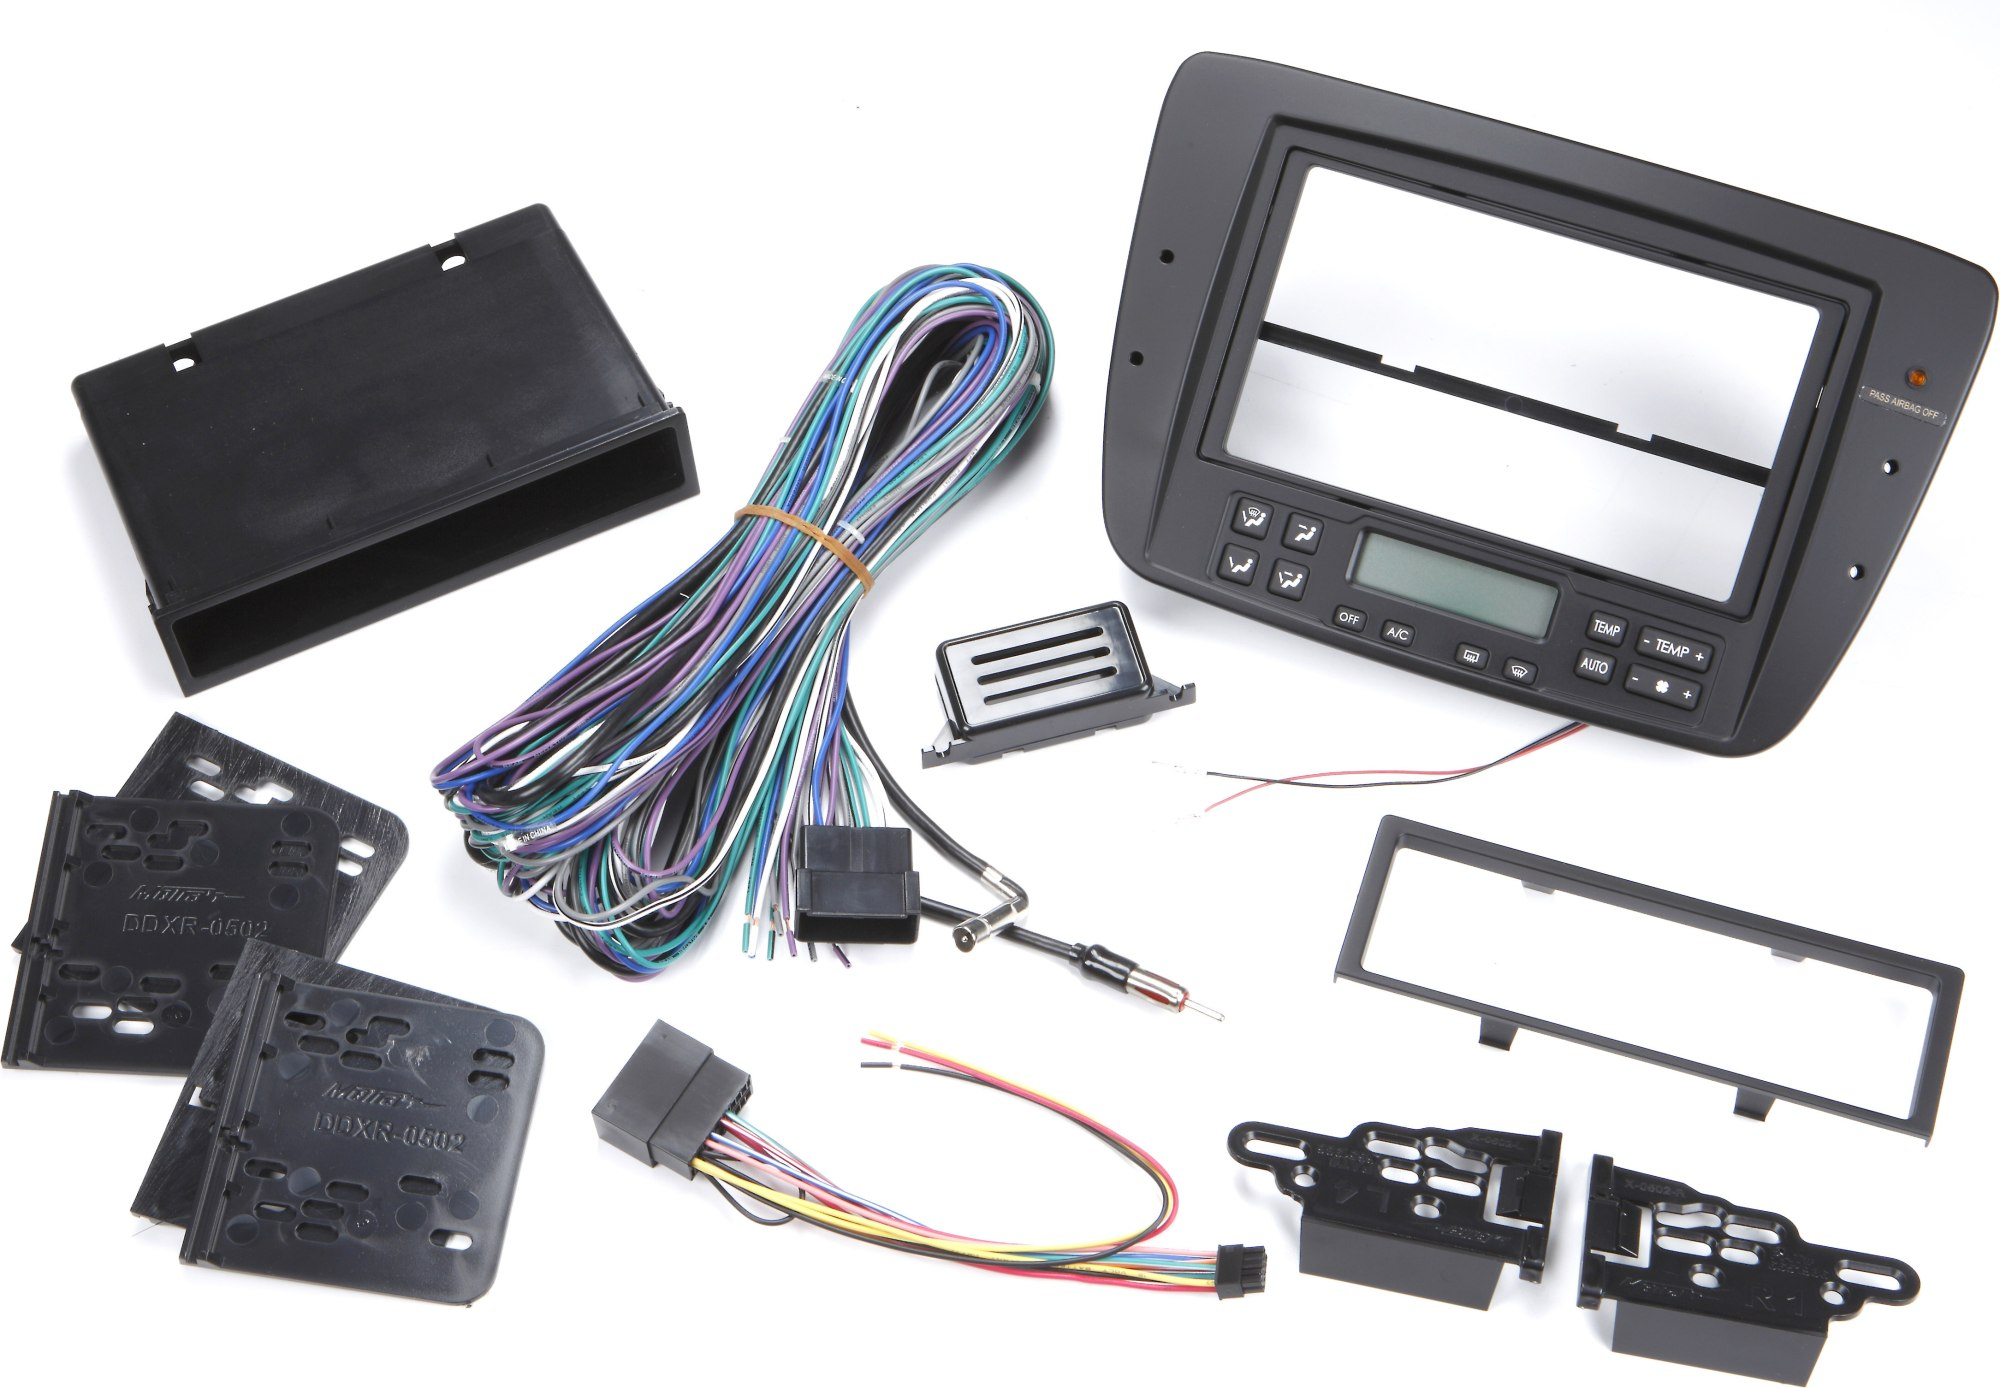 hight resolution of metra 99 5719 dash and wiring kit install and connect a new single din or double din car stereo in a 2004 07 ford taurus or 2004 05 mercury sable at